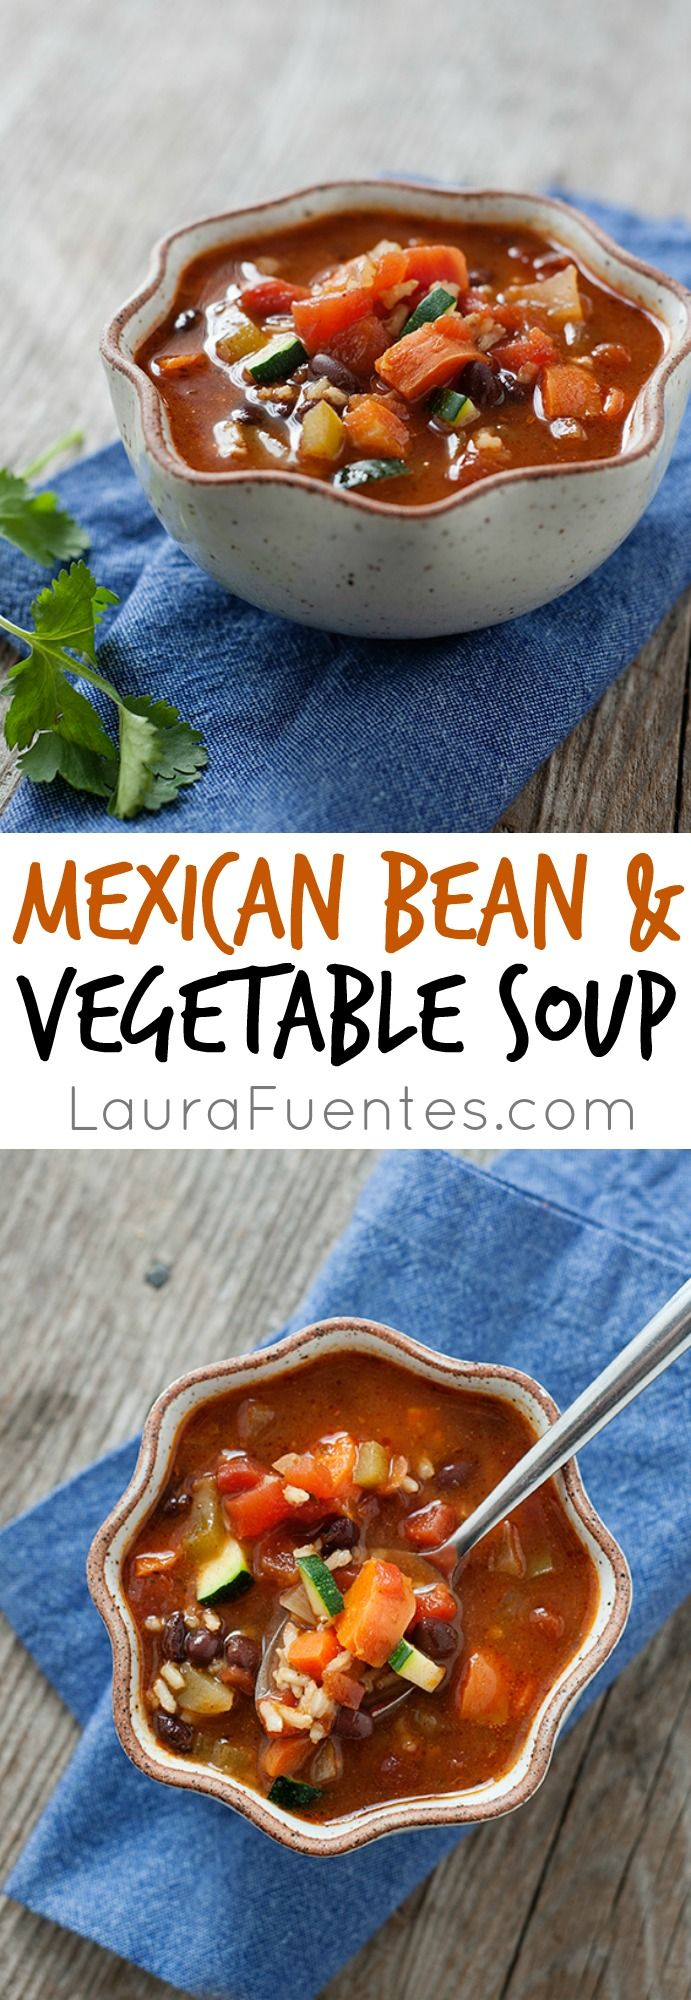 ... on Pinterest | Slow cooker beef, Black bean soup and Soup recipes